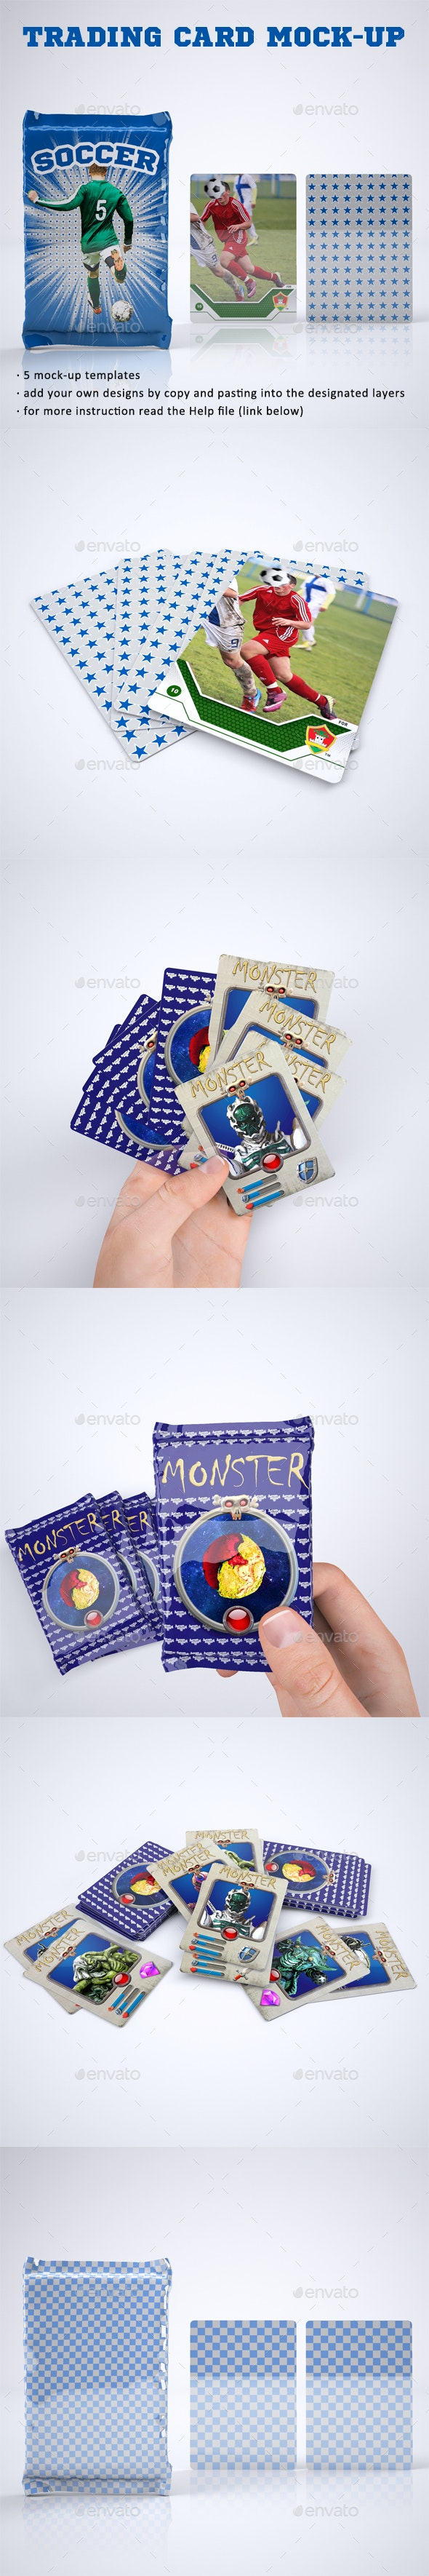 Trading Card or Collectible Card and Wrappers Mock-Up - Print Product Mock-Ups